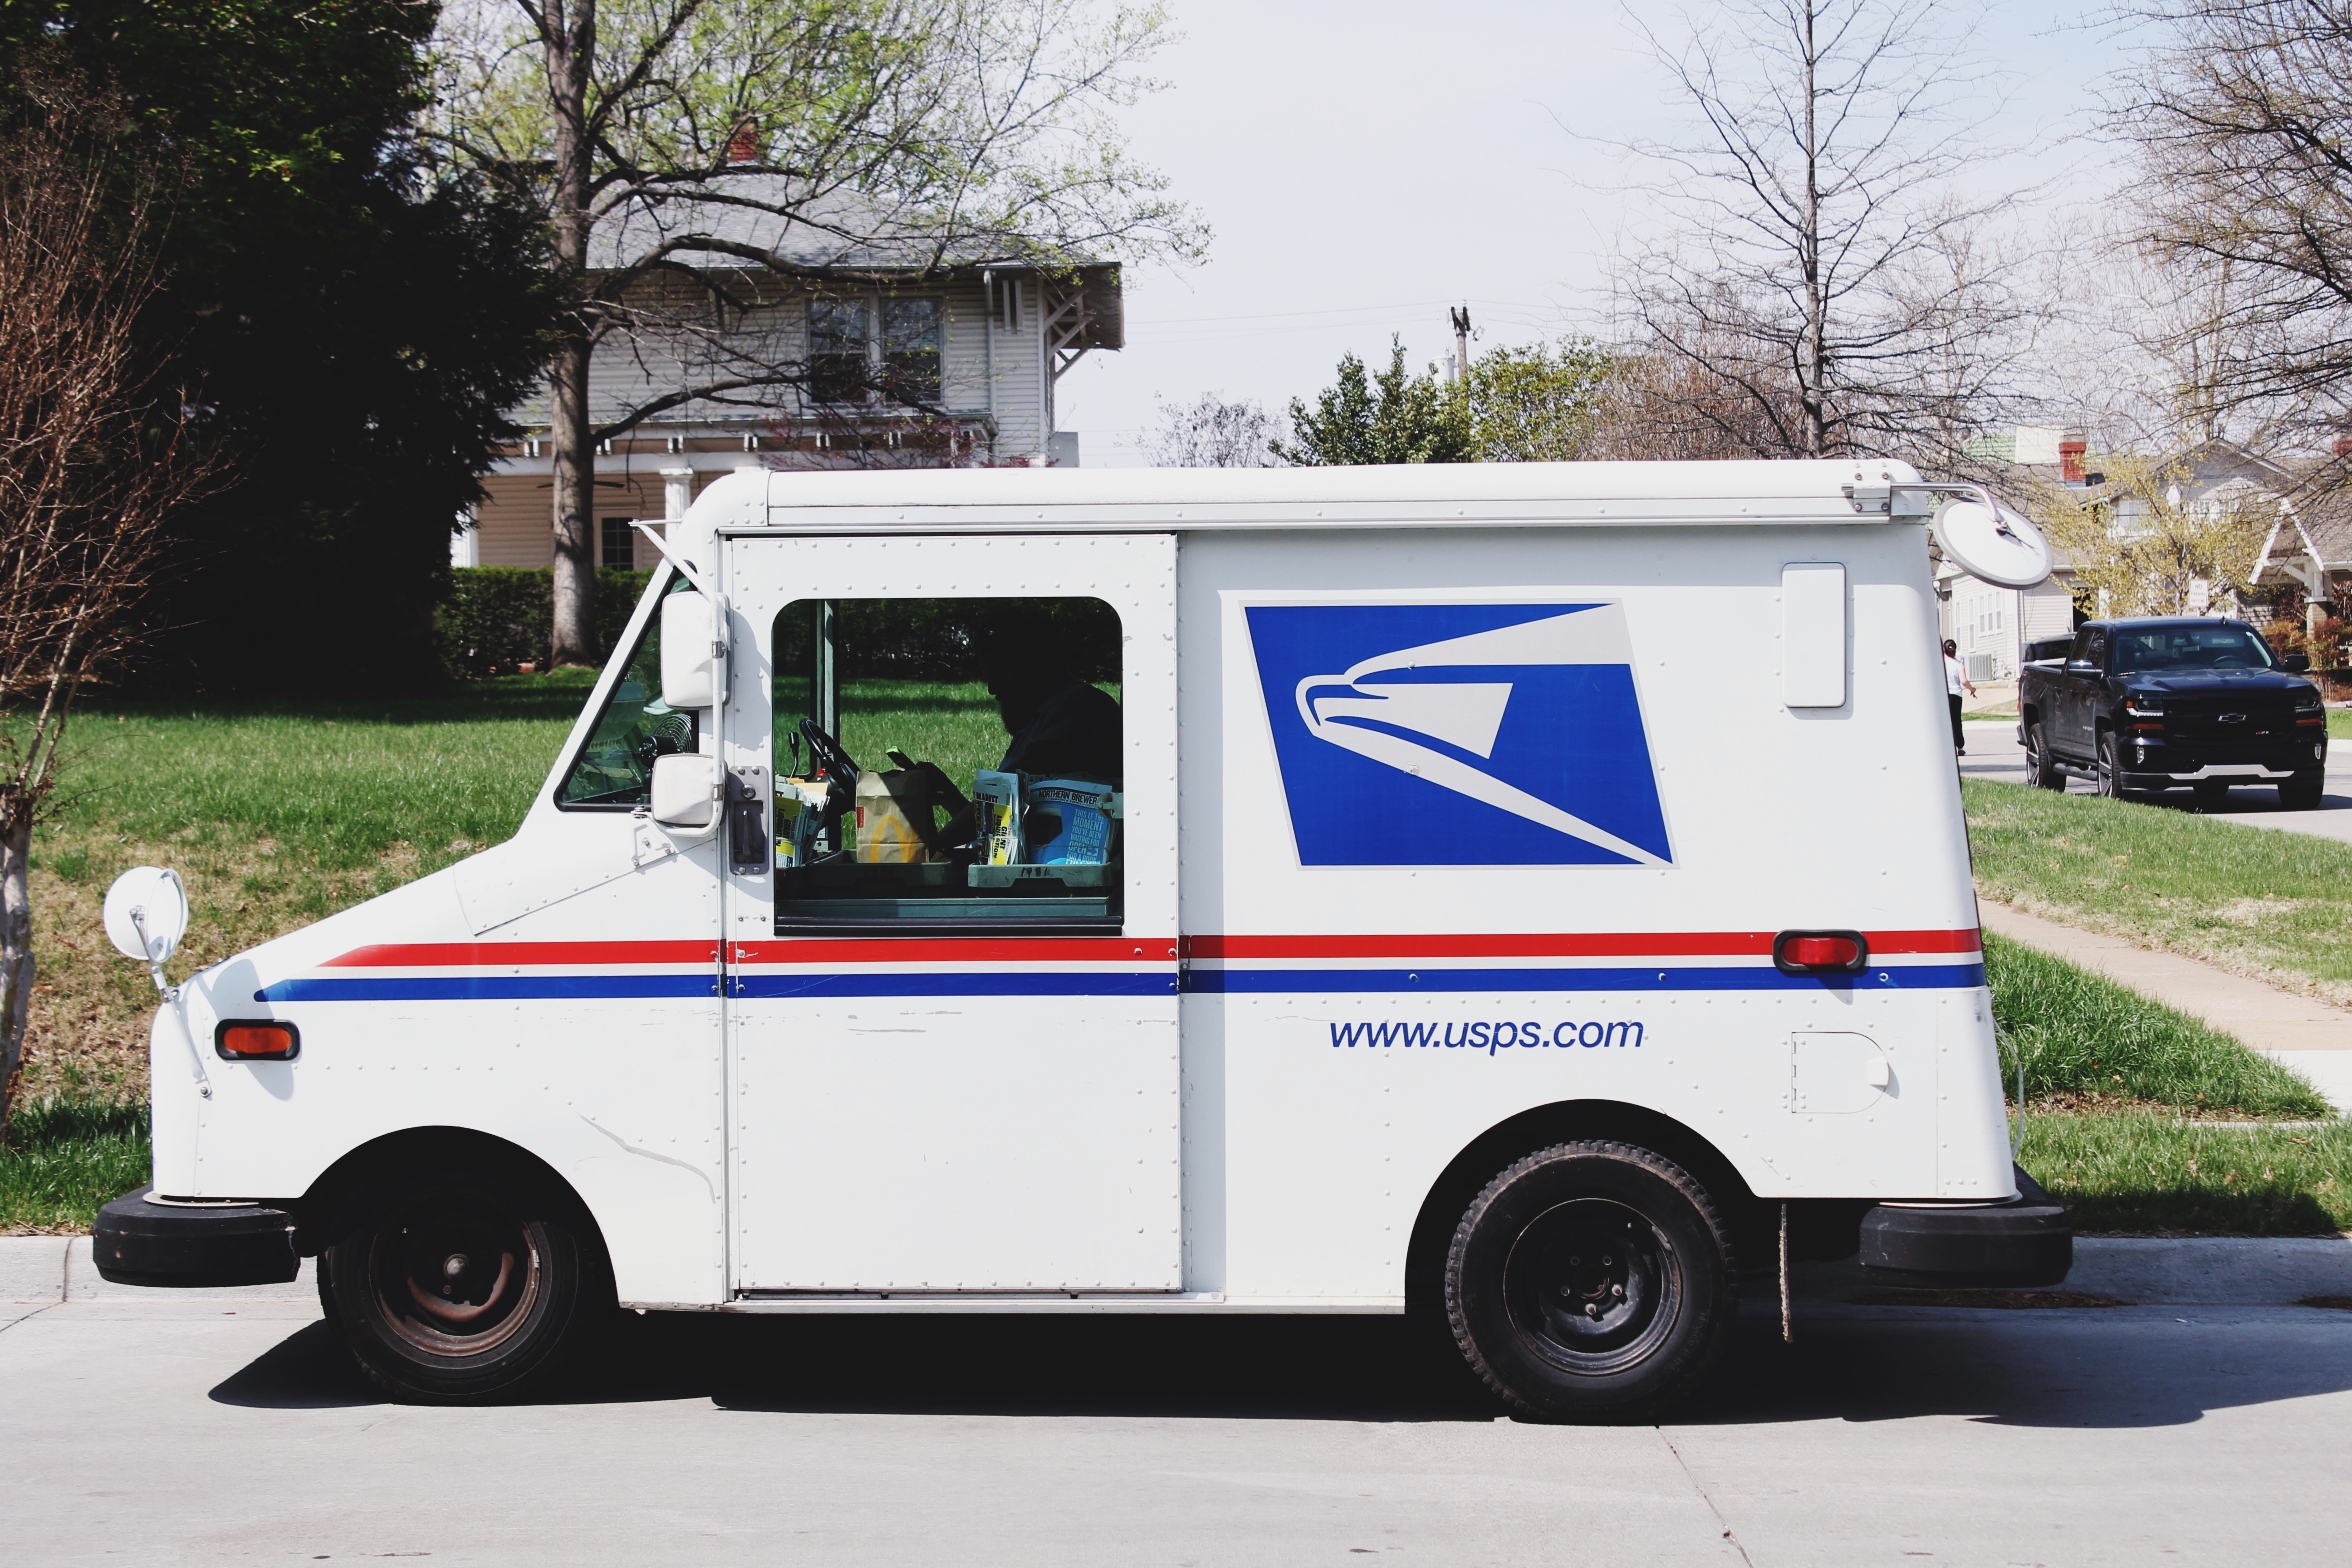 free shipping in woocommerce - usps truck